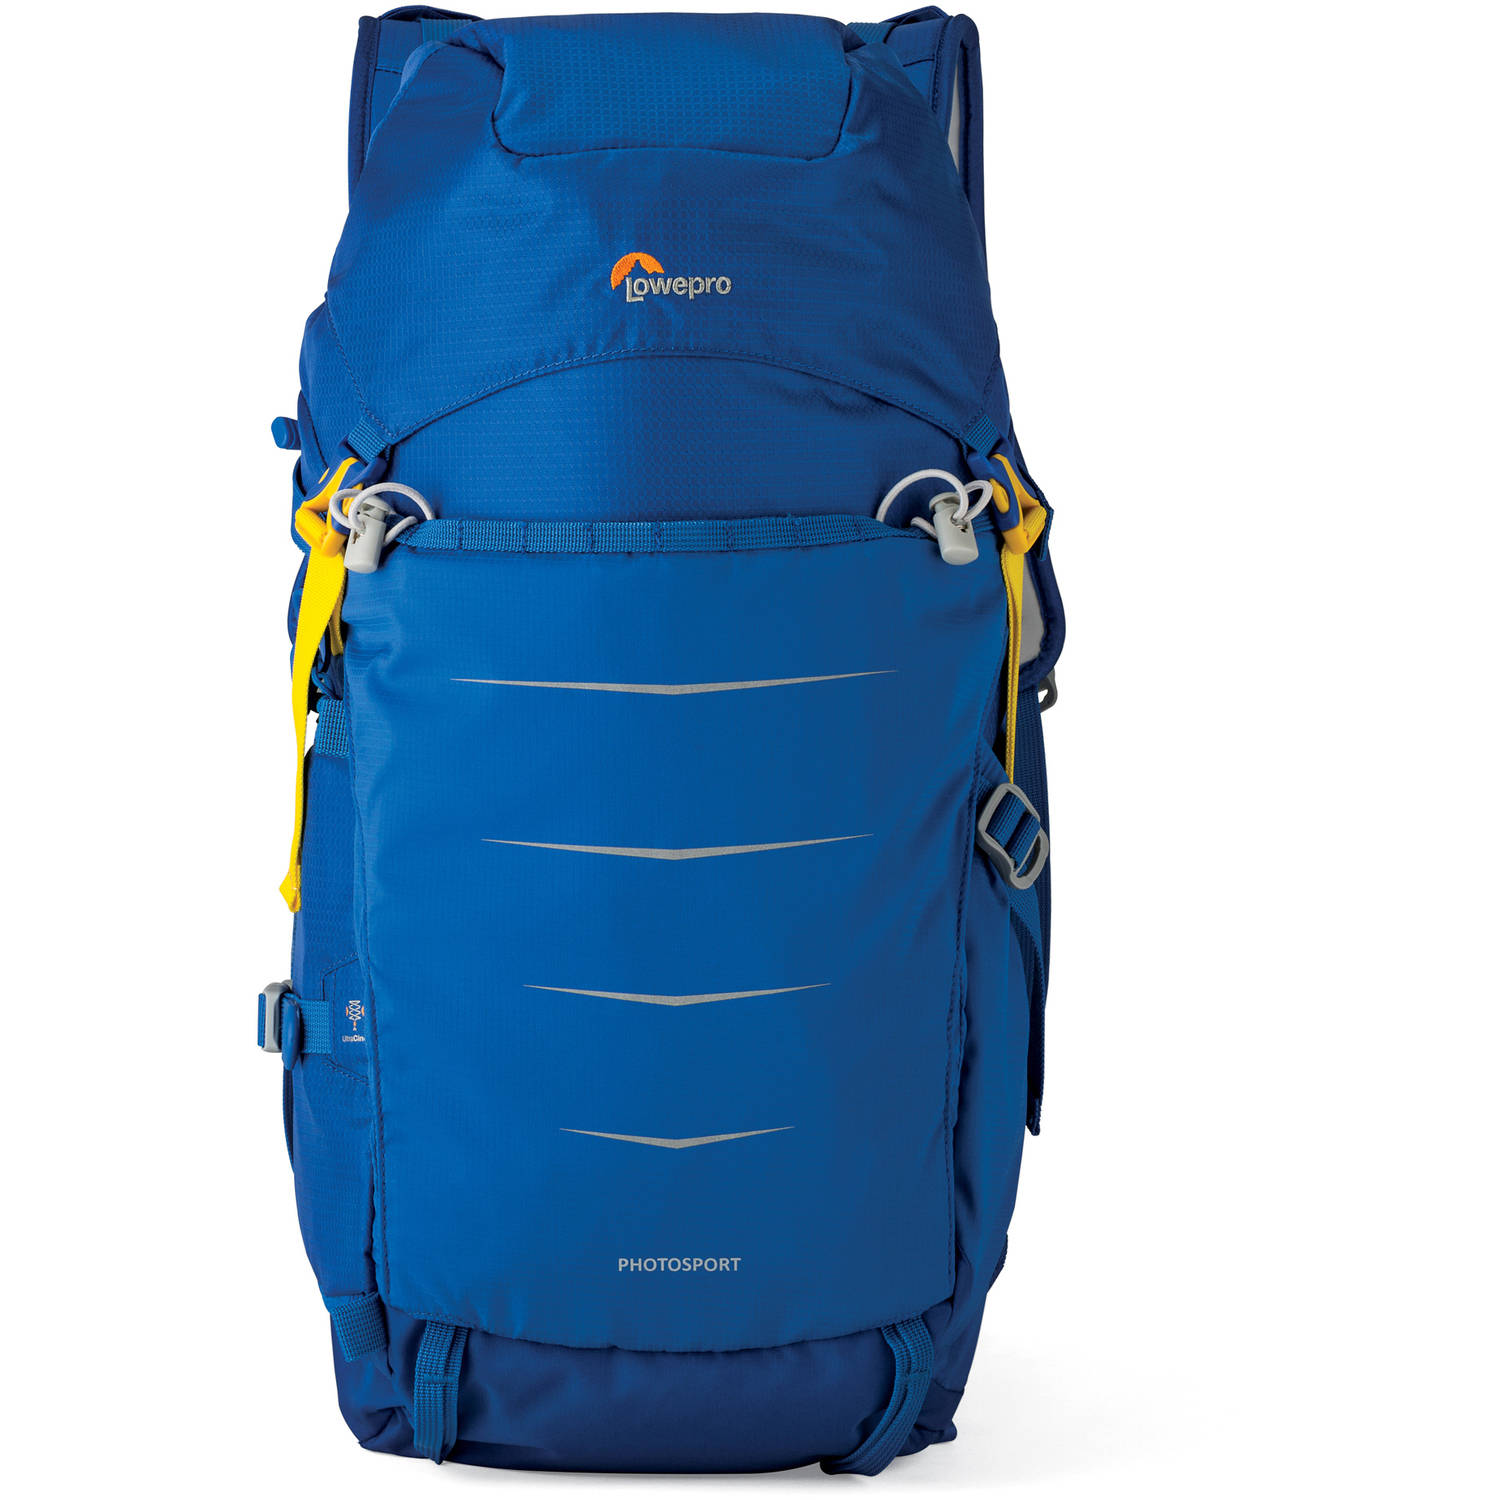 Lowepro Photo Sport BP 200 AW II, Blue